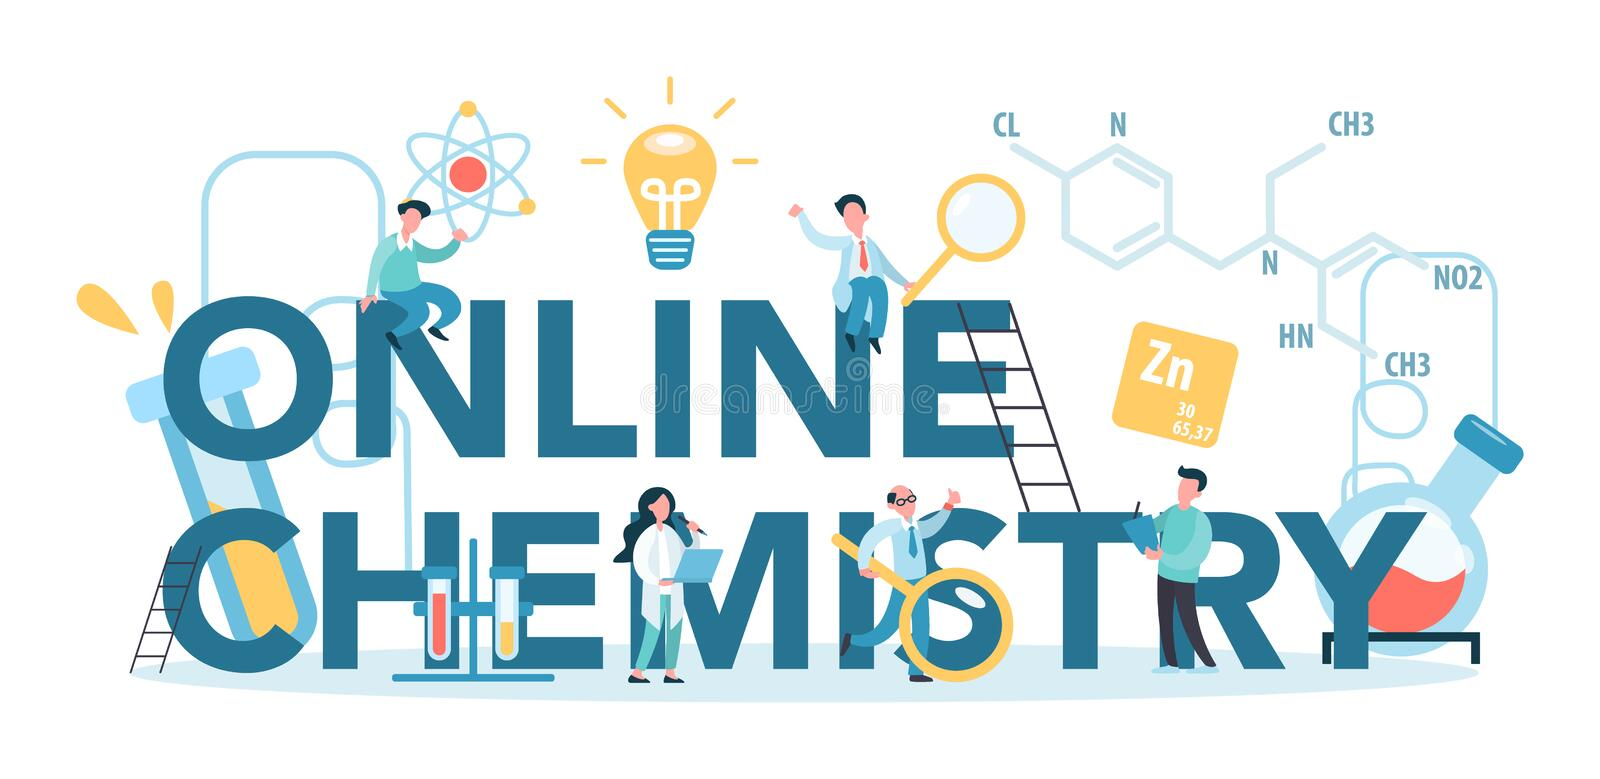 Chemistry Online Studying Typographic Concept. Online Course Stock Vector - Illustration of online, object: 179858324